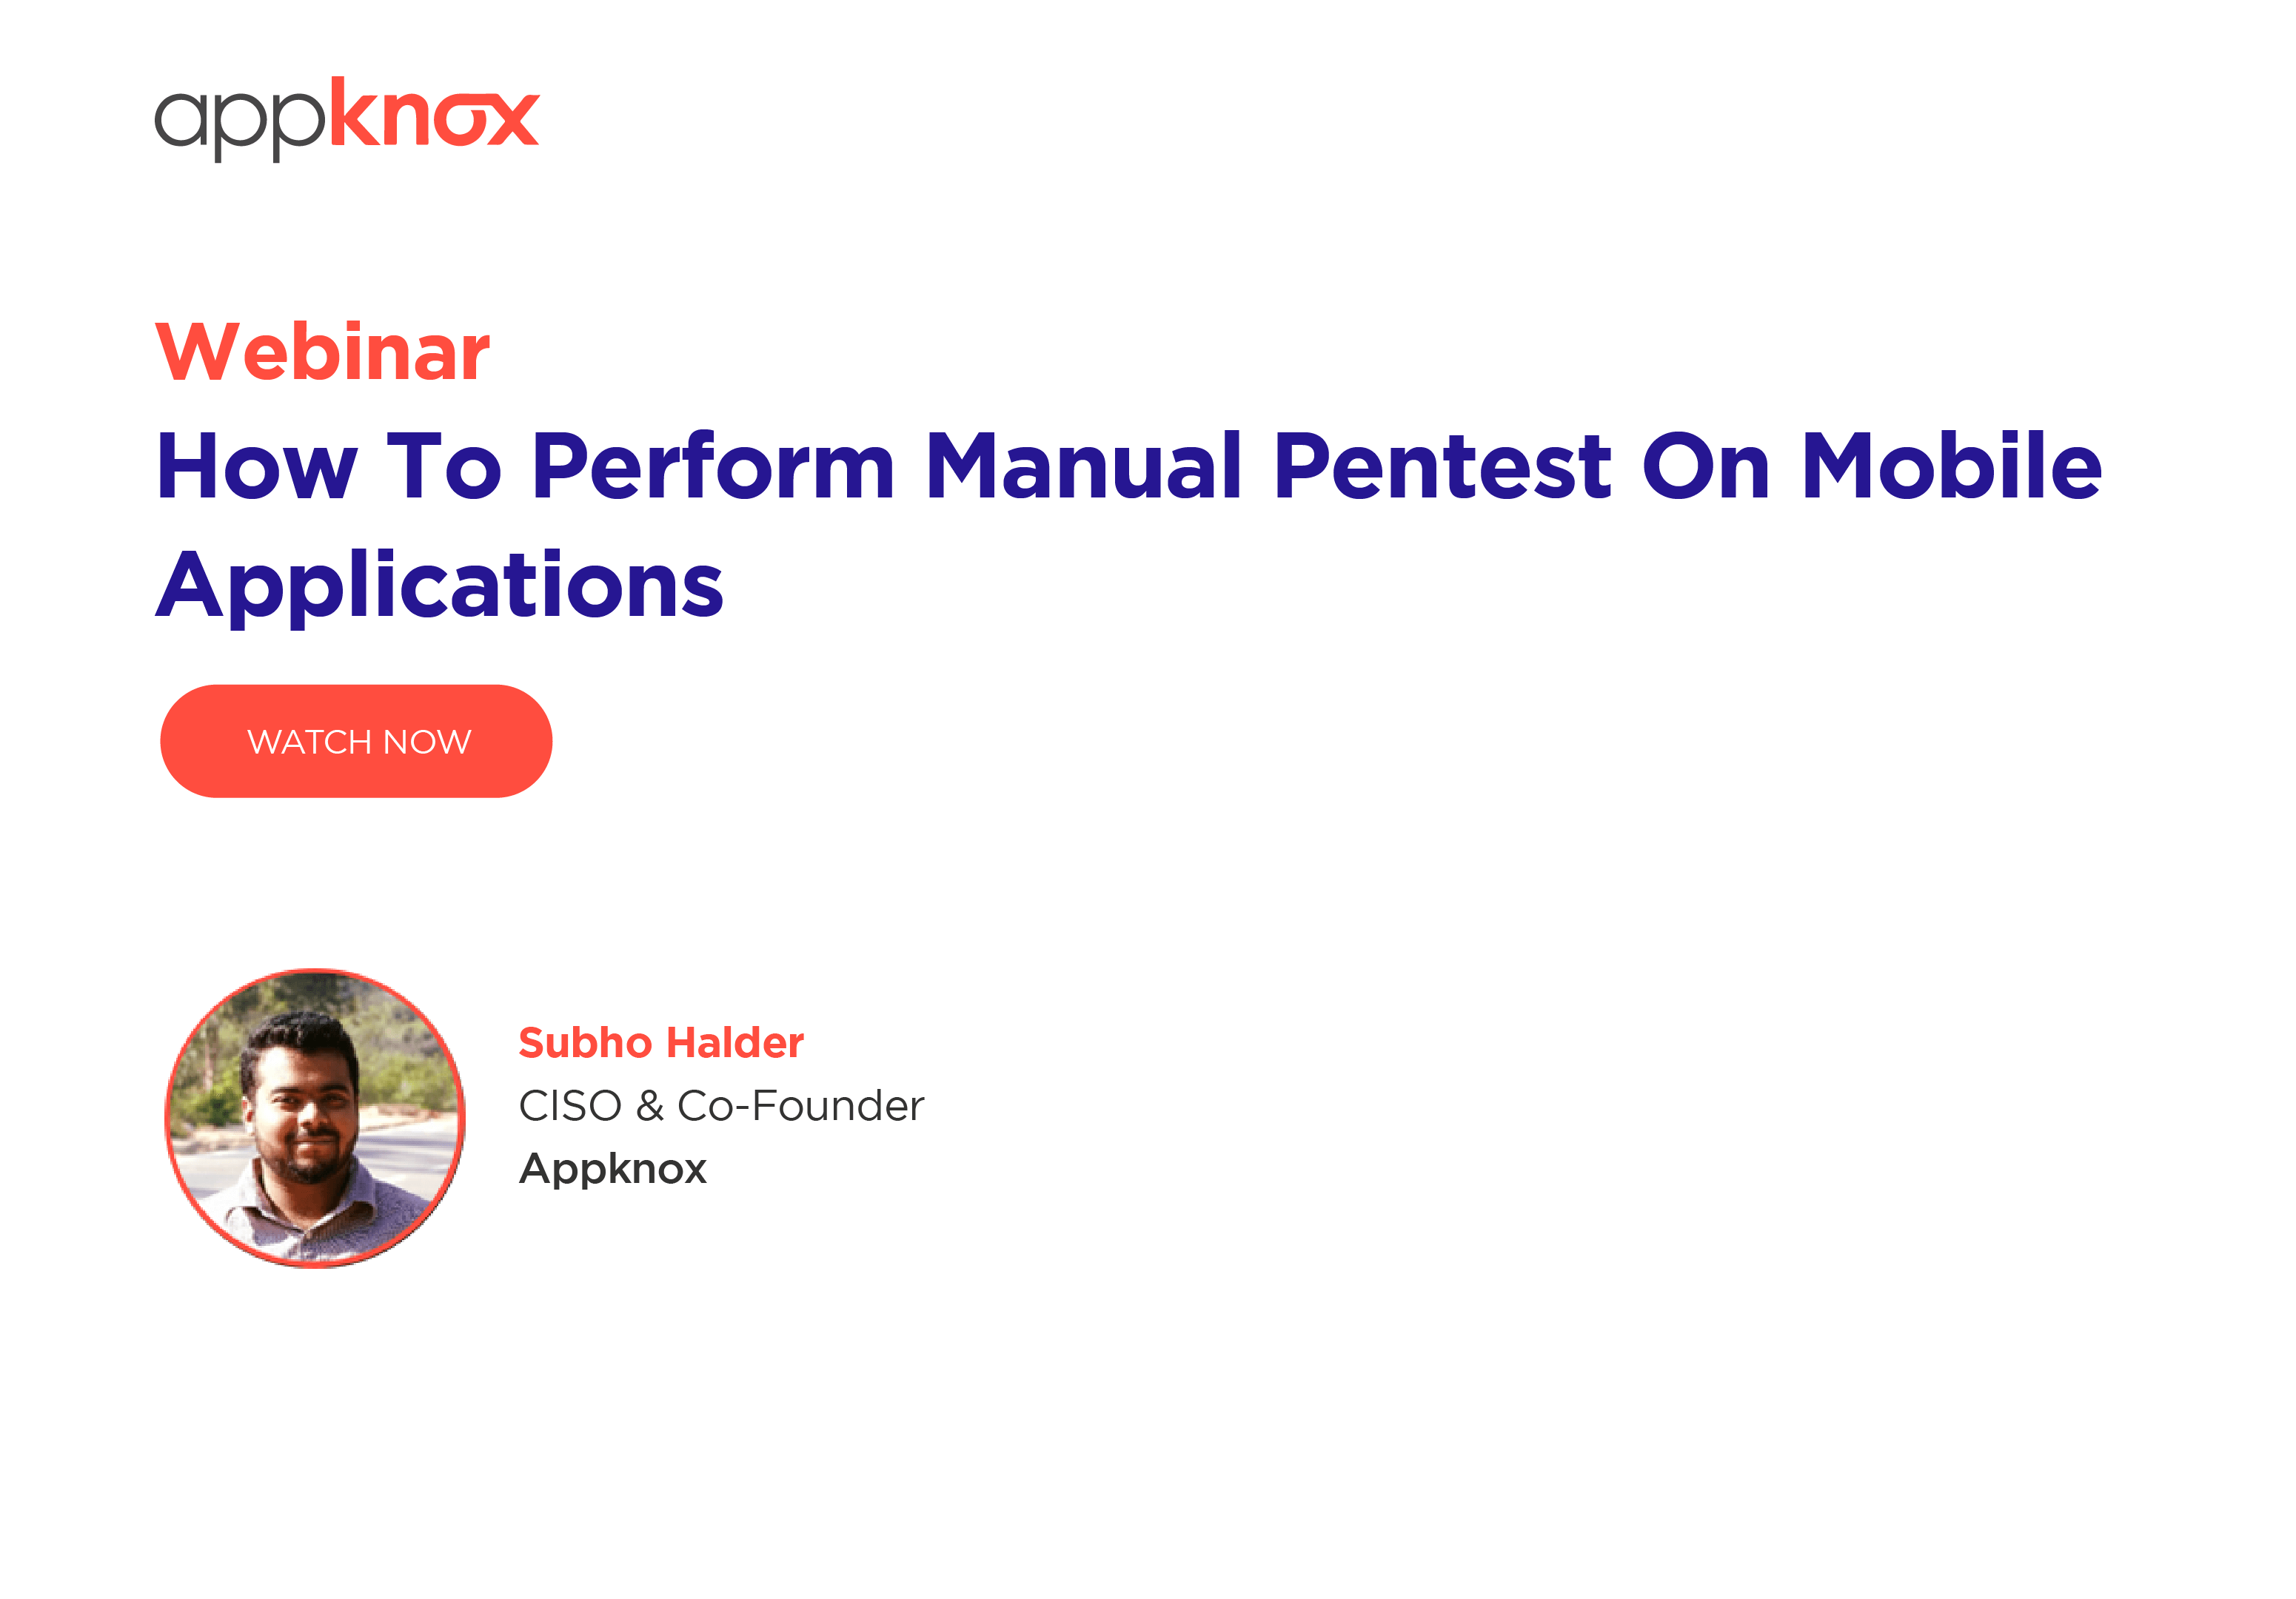 WEBINAR - How To Perform Manual Pentest On Mobile Applications